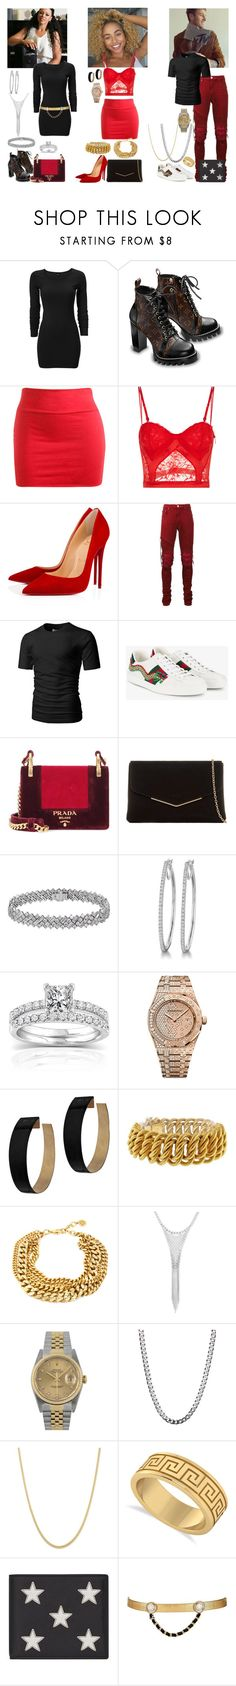 """""""Whatchu Do it for?"""" by i-be-romania143 ❤ liked on Polyvore featuring DK, Wet Seal, La Perla, Christian Louboutin, AMIRI, Gucci, Prada, KoKo Couture, Annello and Audemars Piguet"""